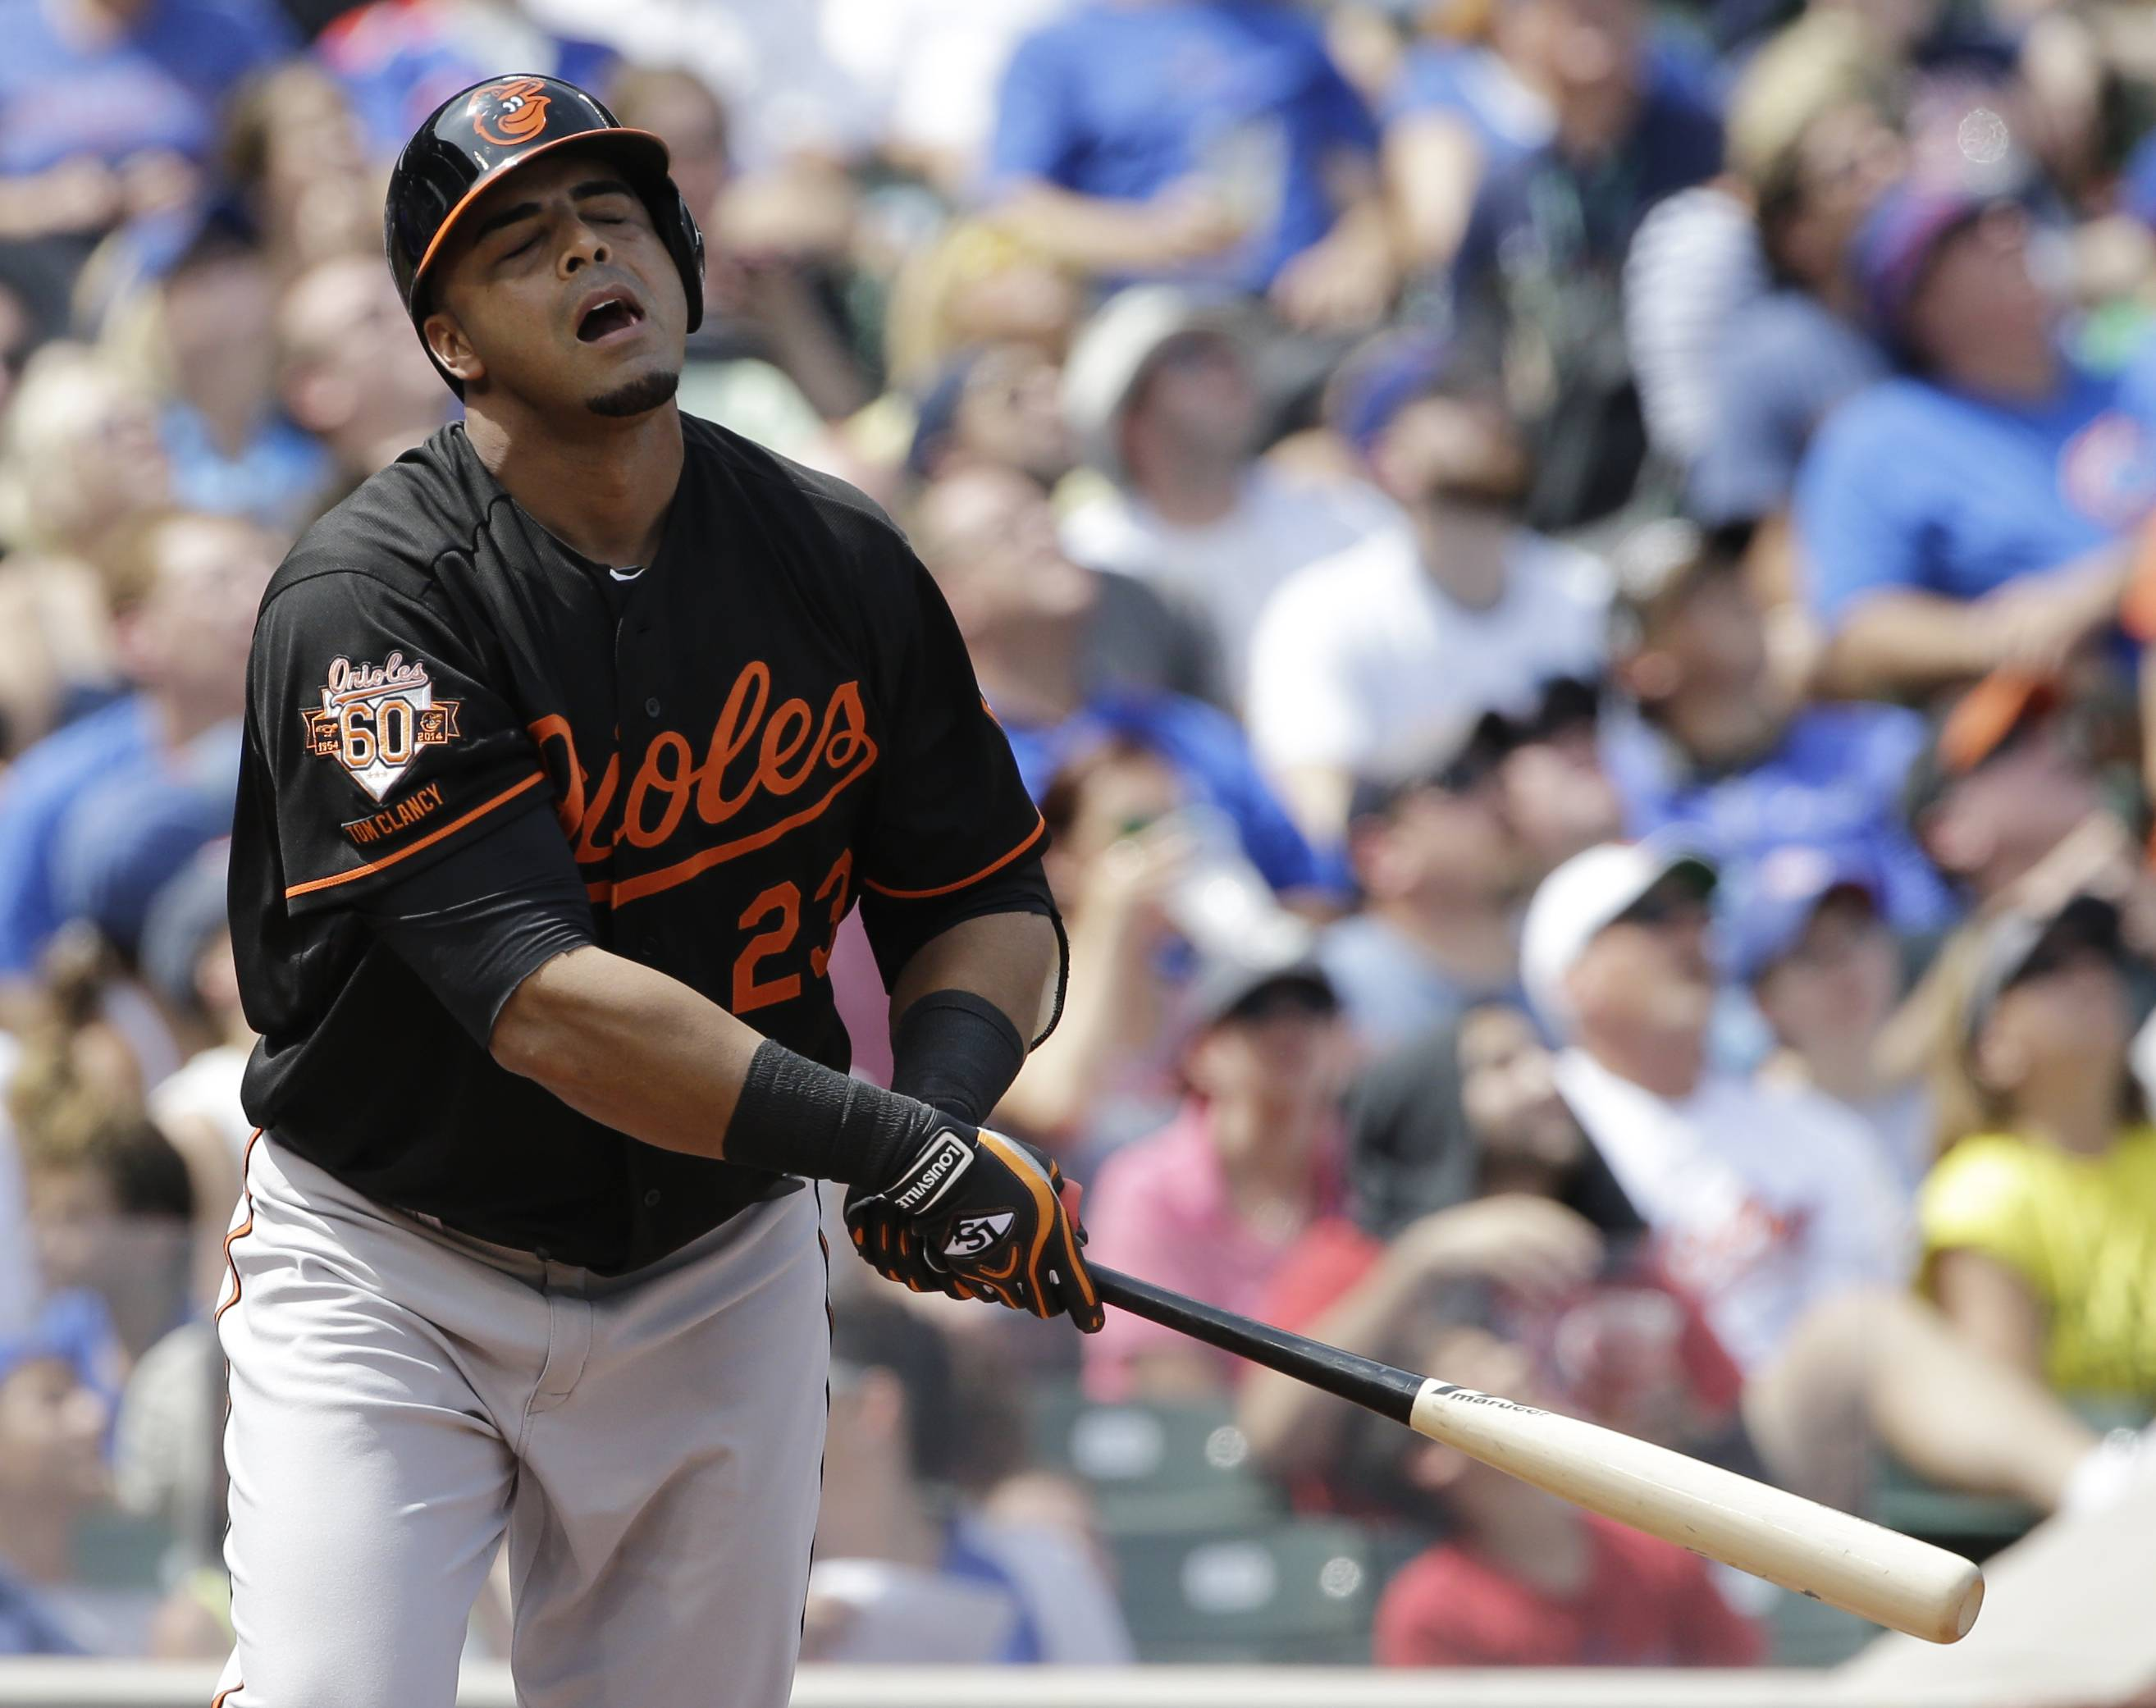 Baltimore Orioles' Nelson Cruz reacts after hitting a fly ball to Chicago Cubs third baseman Luis Valbuena during the second inning of an interleague baseball game in Chicago, Friday, Aug. 22, 2014.